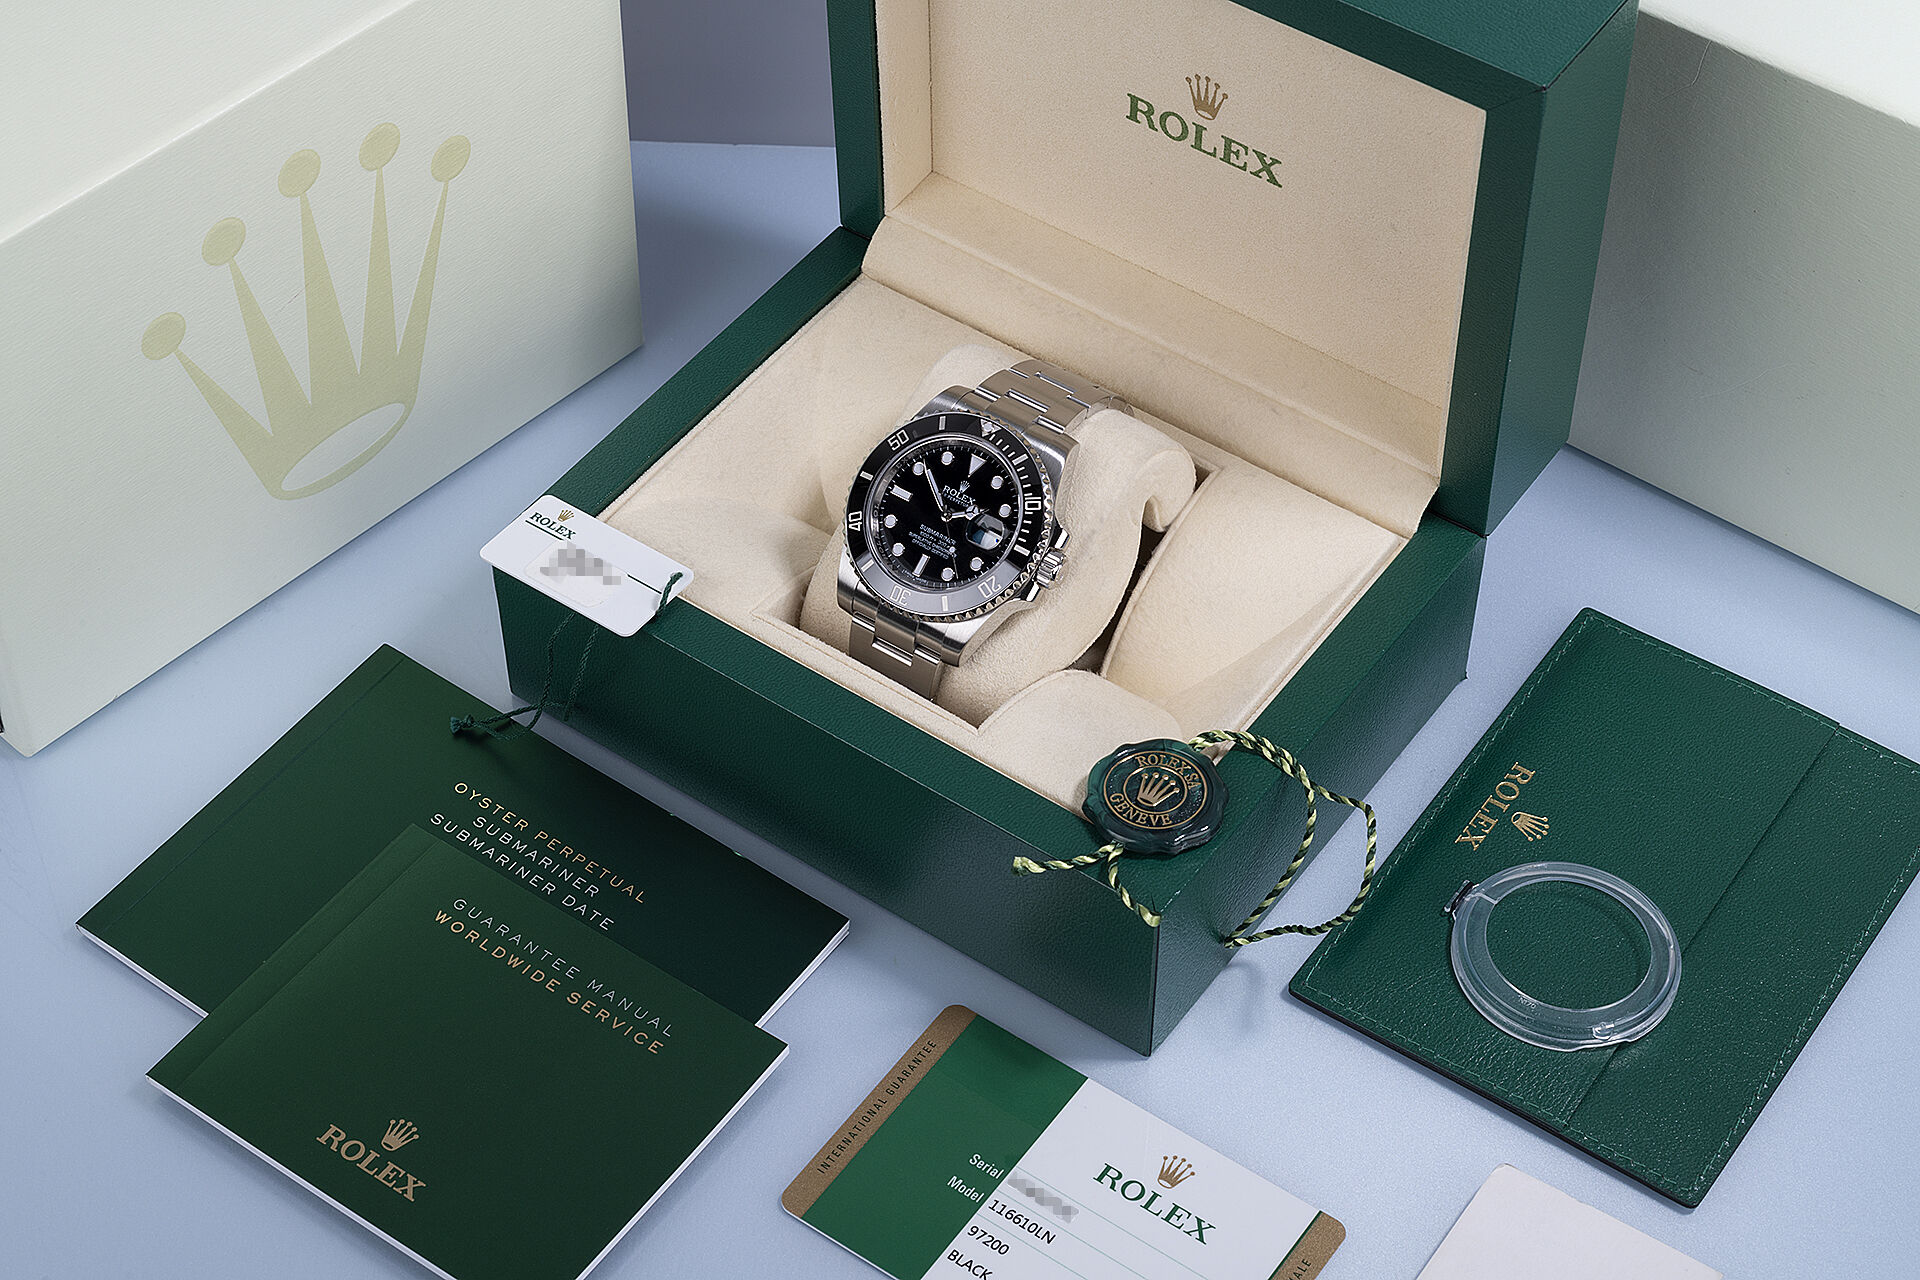 ref 116610LN | No Longer In Production | Rolex Submariner Date